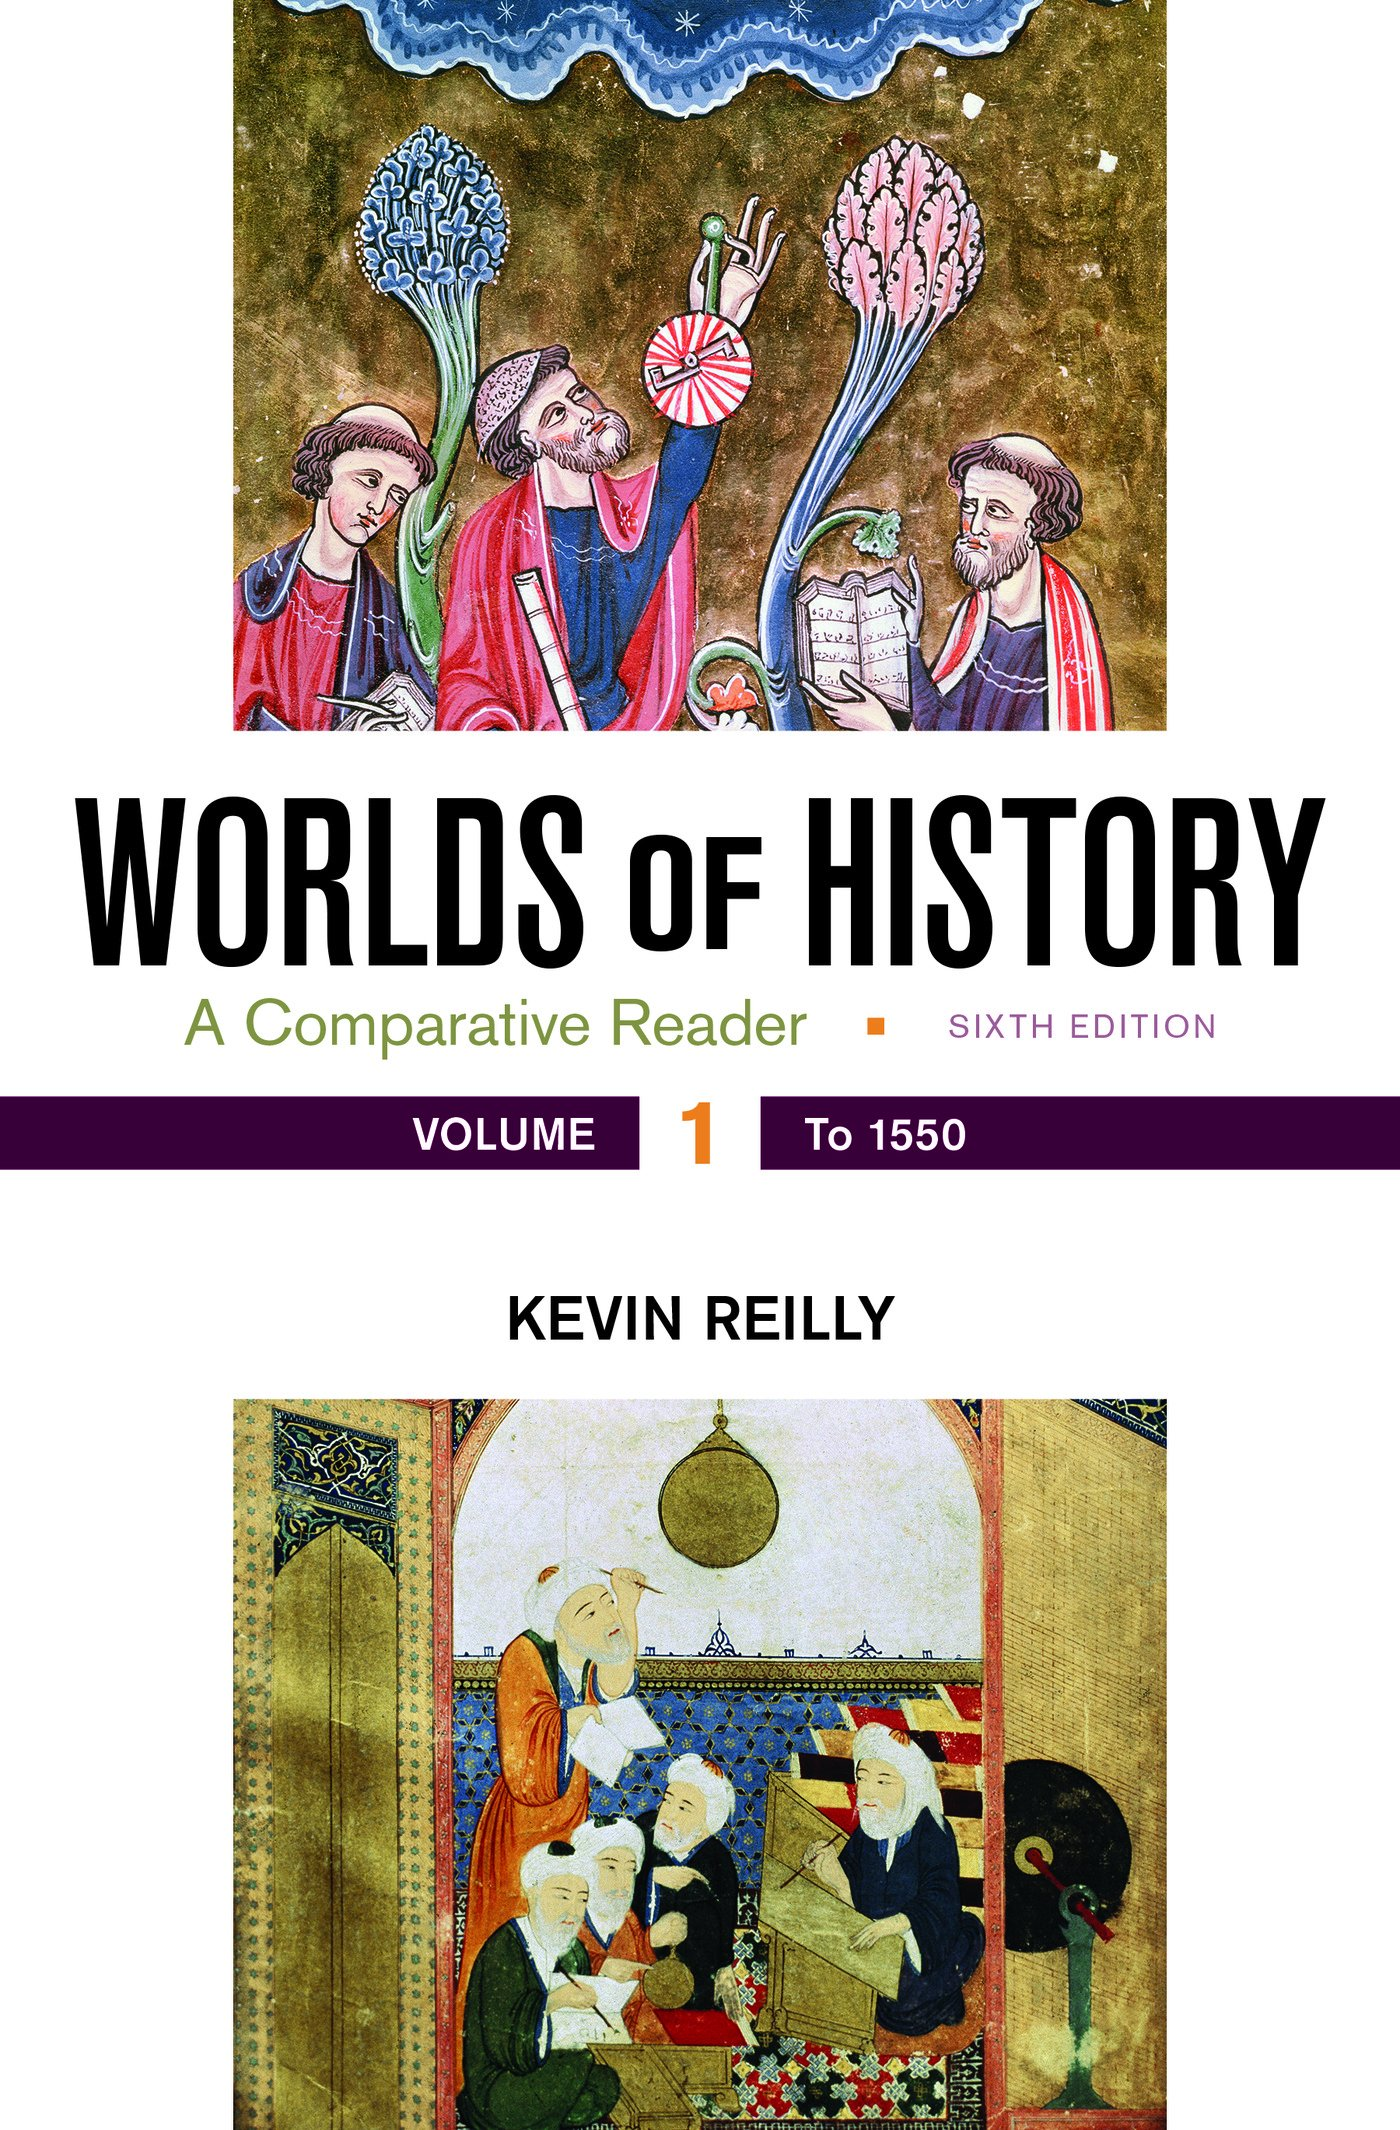 Worlds of History, Volume 1: A Comparative Reader, to 1550 by Bedford/St. Martin's